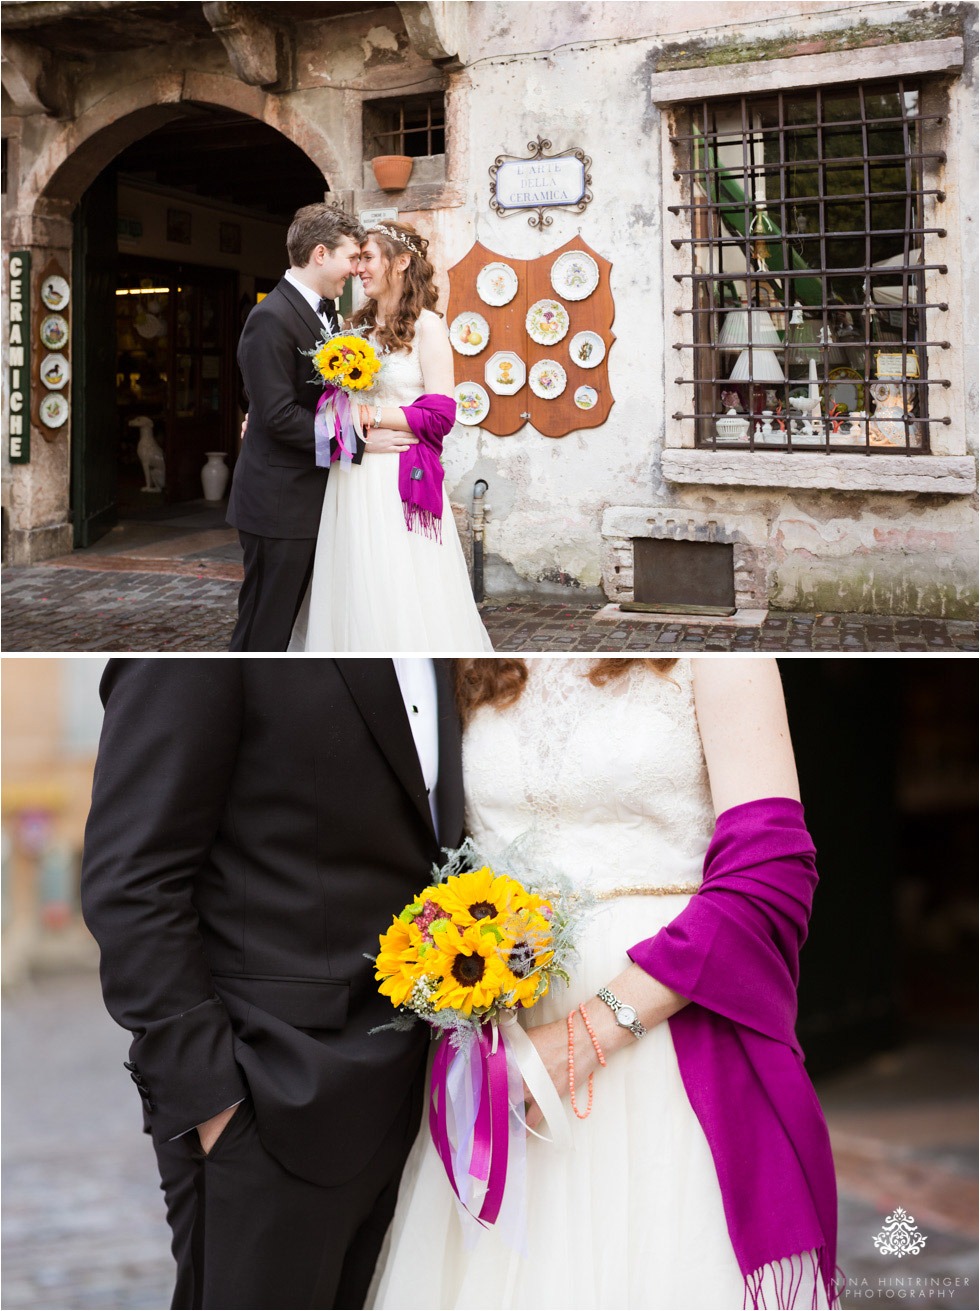 Bridal portraits in the city of Bassano del Grappa, Italy - Blog of Nina Hintringer Photography - Wedding Photography, Wedding Reportage and Destination Weddings